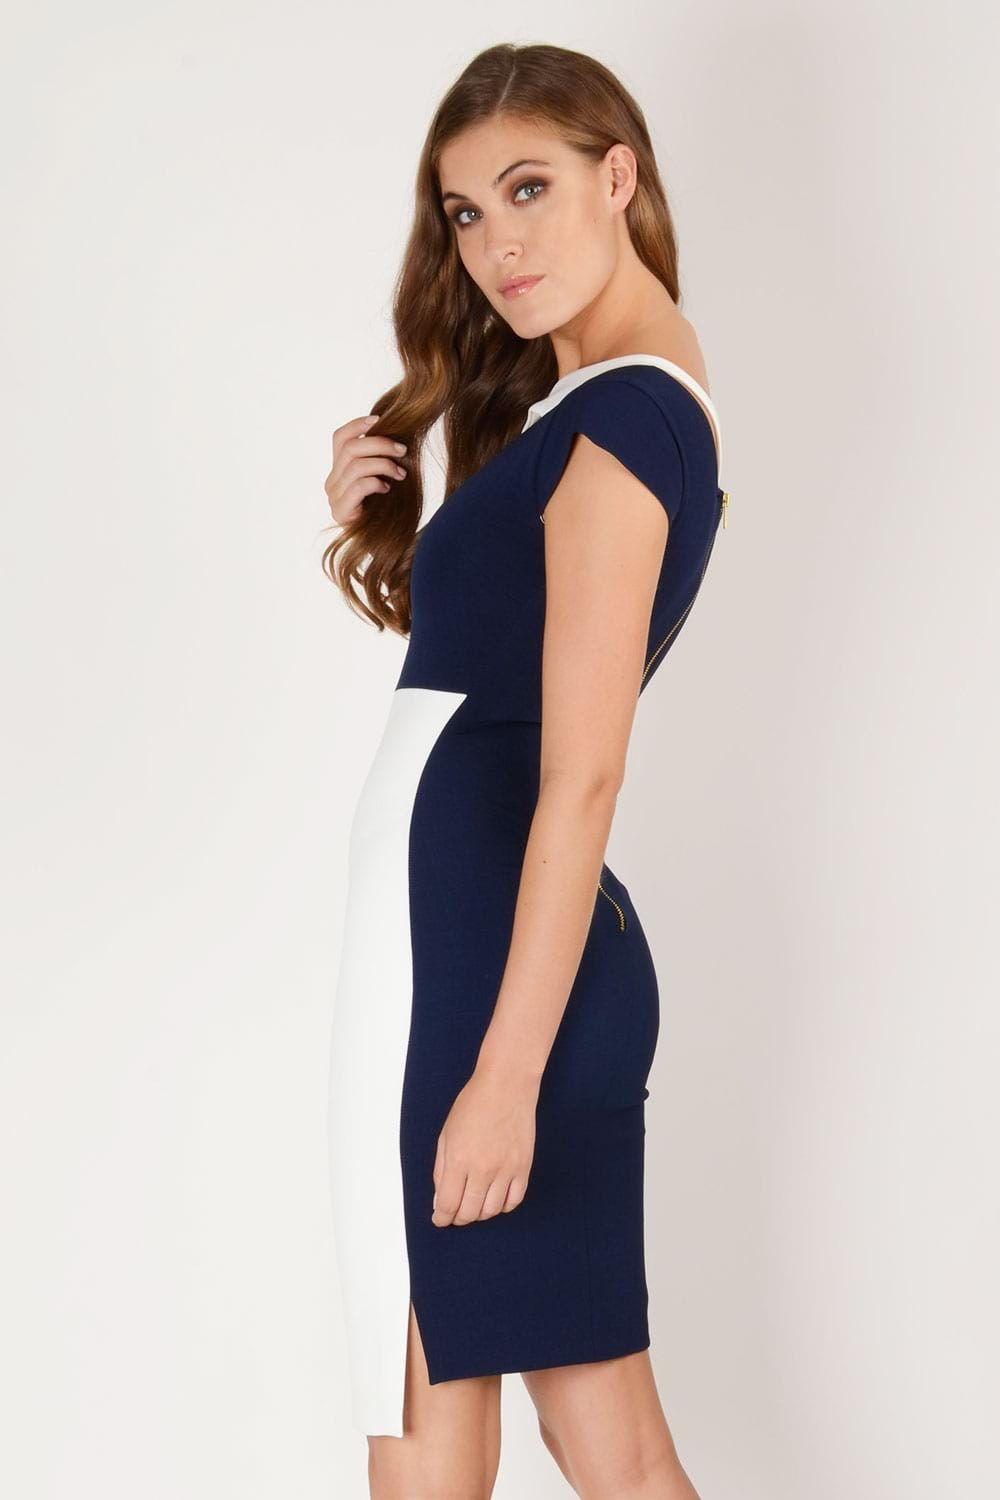 Hybrid Fashion 1243 Winona Asymmetric Pencil Dress